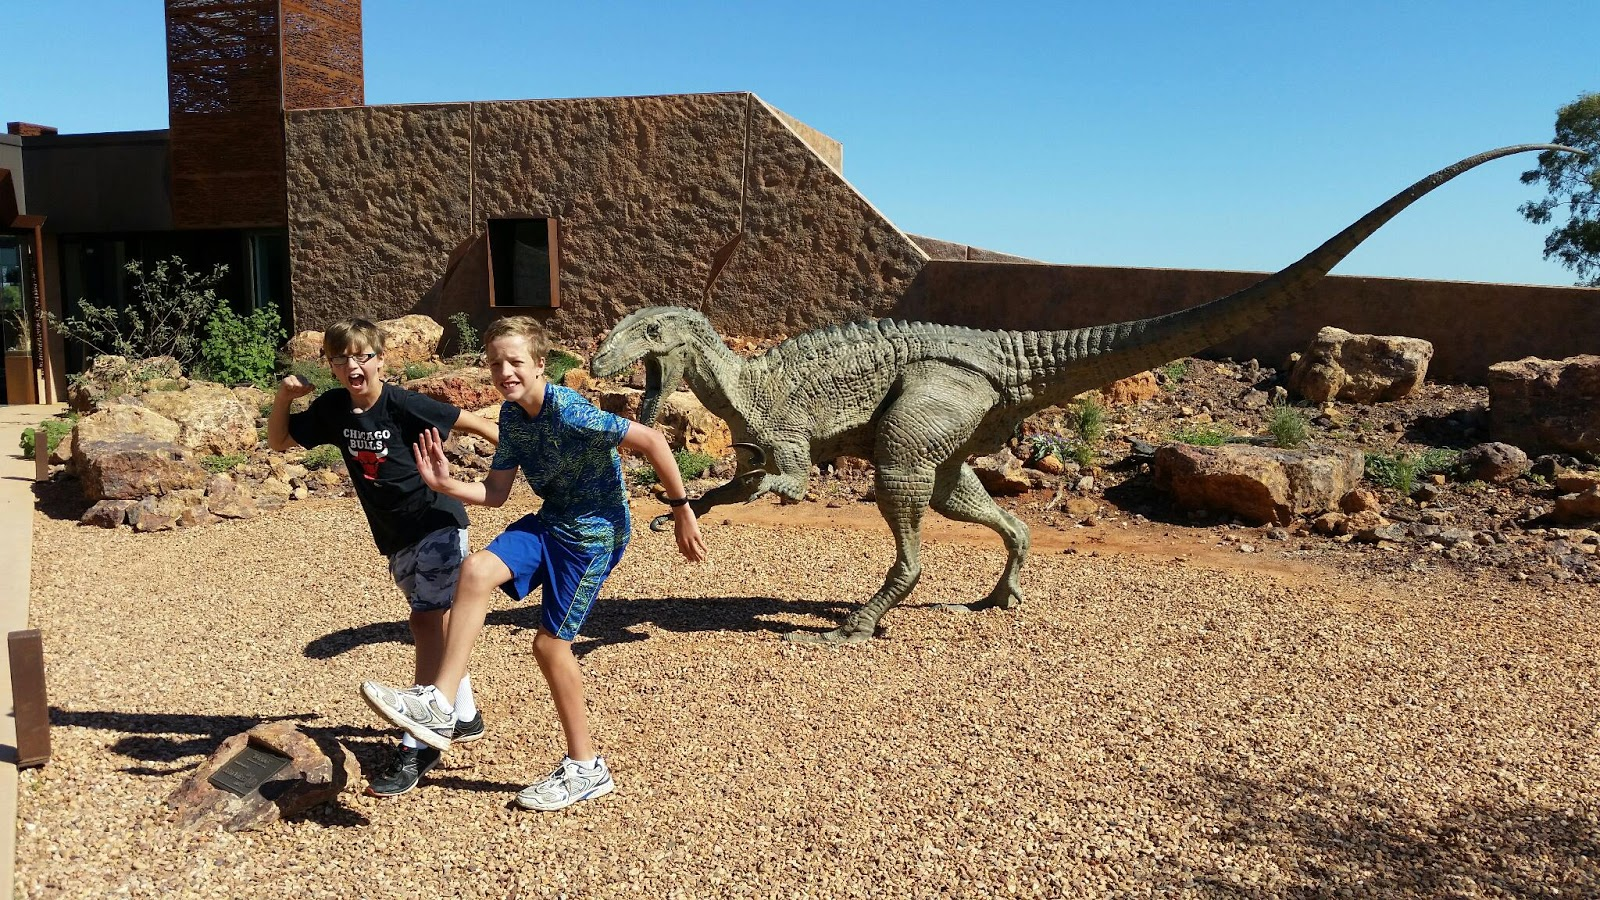 Winton S Australian Age Of Dinosaurs Museum A Genuinely Significant Tourism Site On National Scale